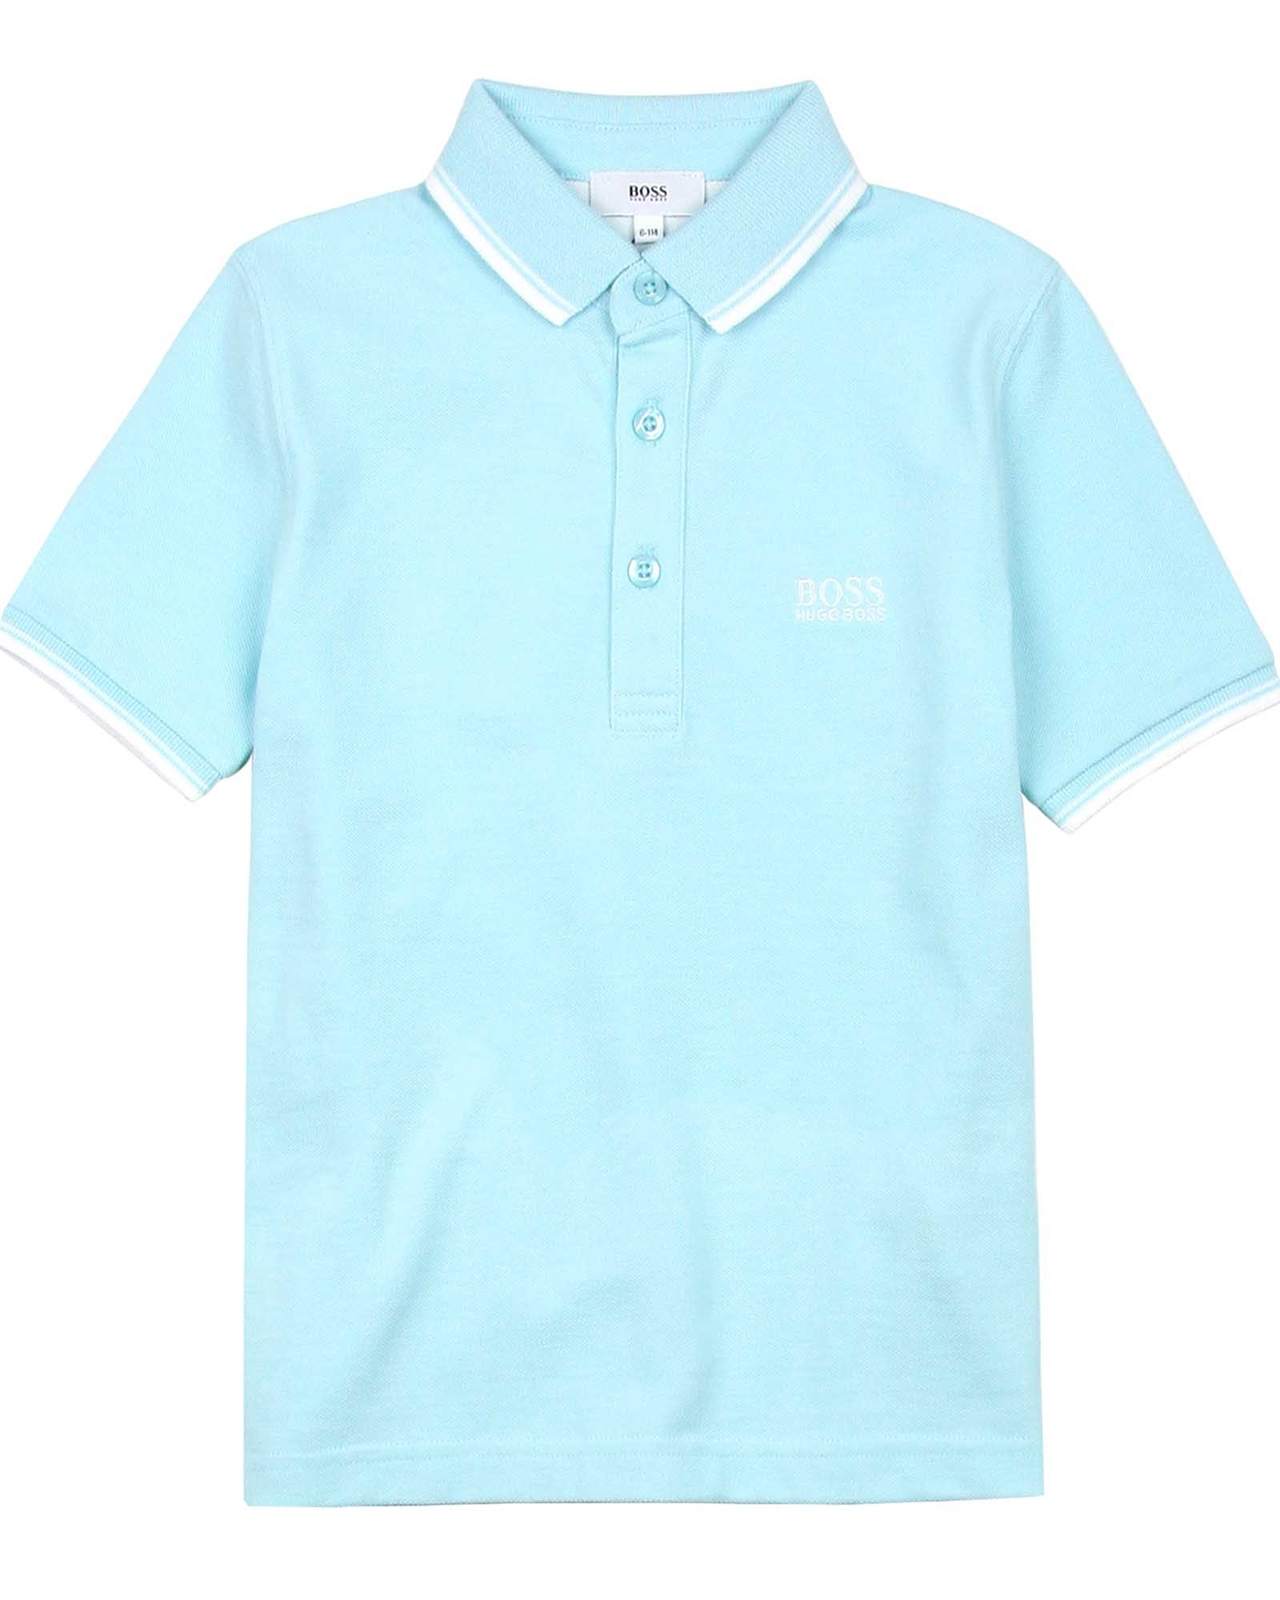 8ec6b8a81 BOSS Boys Basic Polo Shirt in Light Blue - BOSS - BOSS Boys Clothes ...